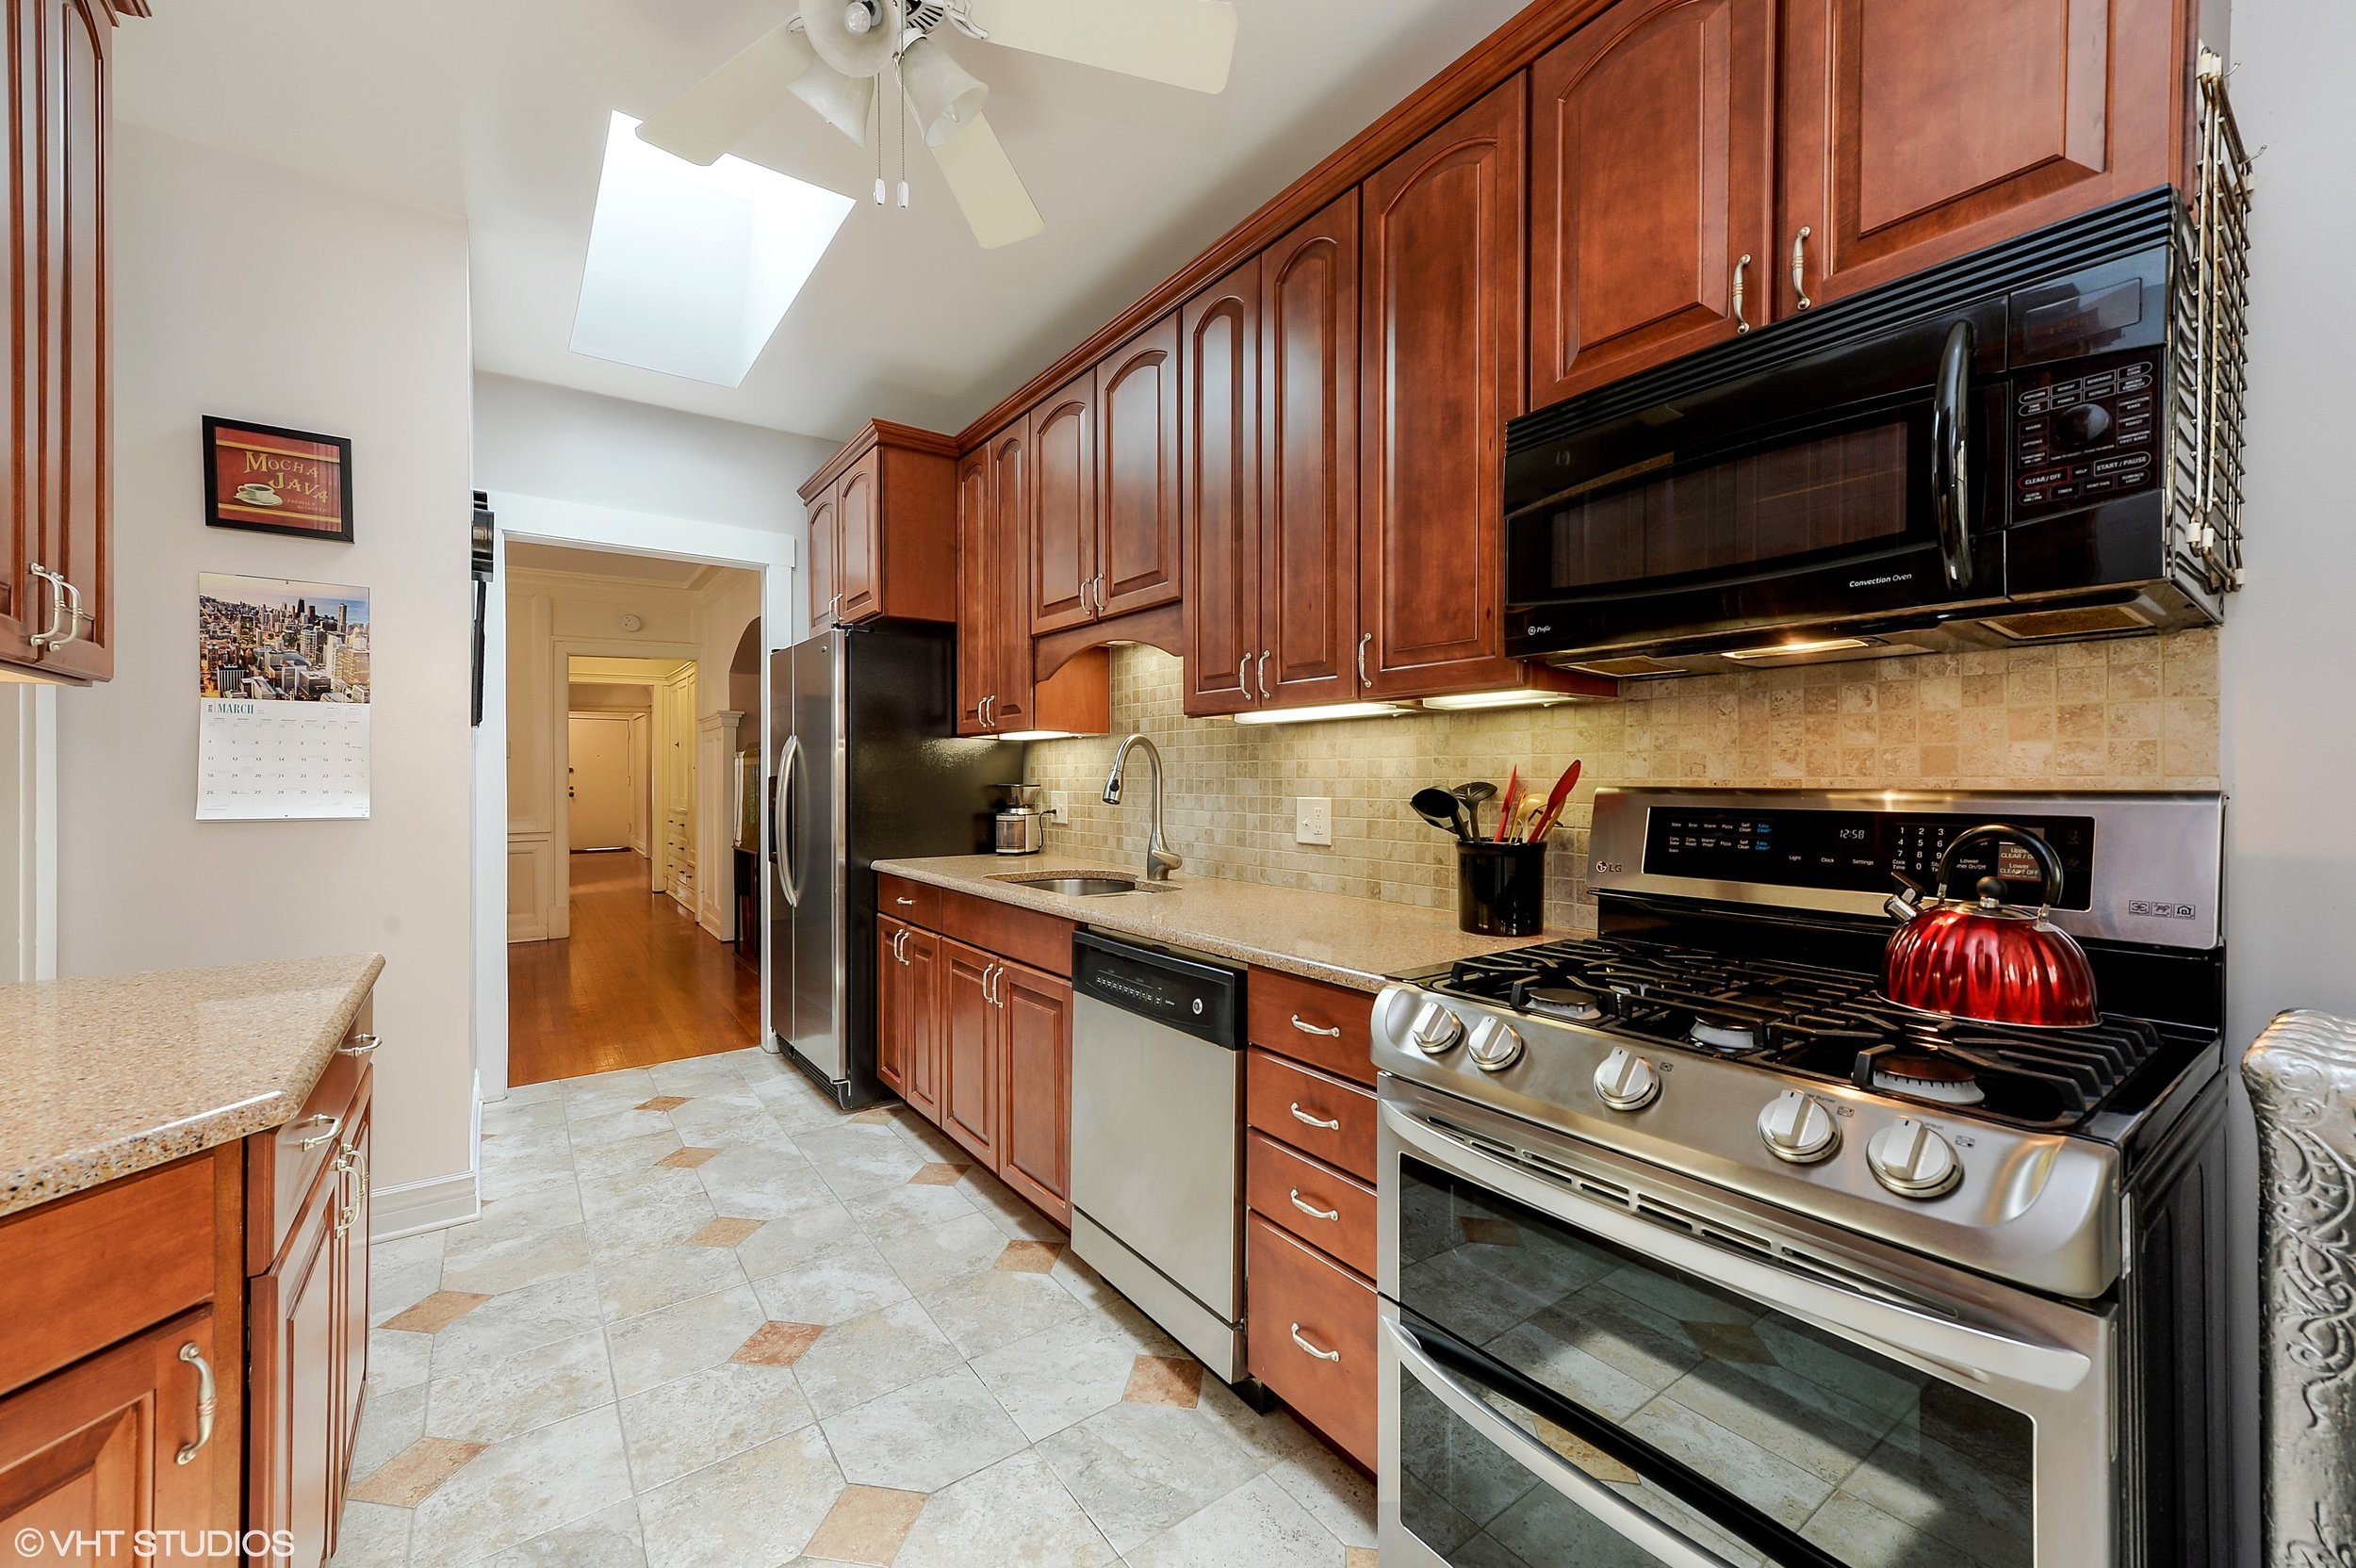 04_922WestWinonaSt_3E_5_Kitchen_HiRes.jpg